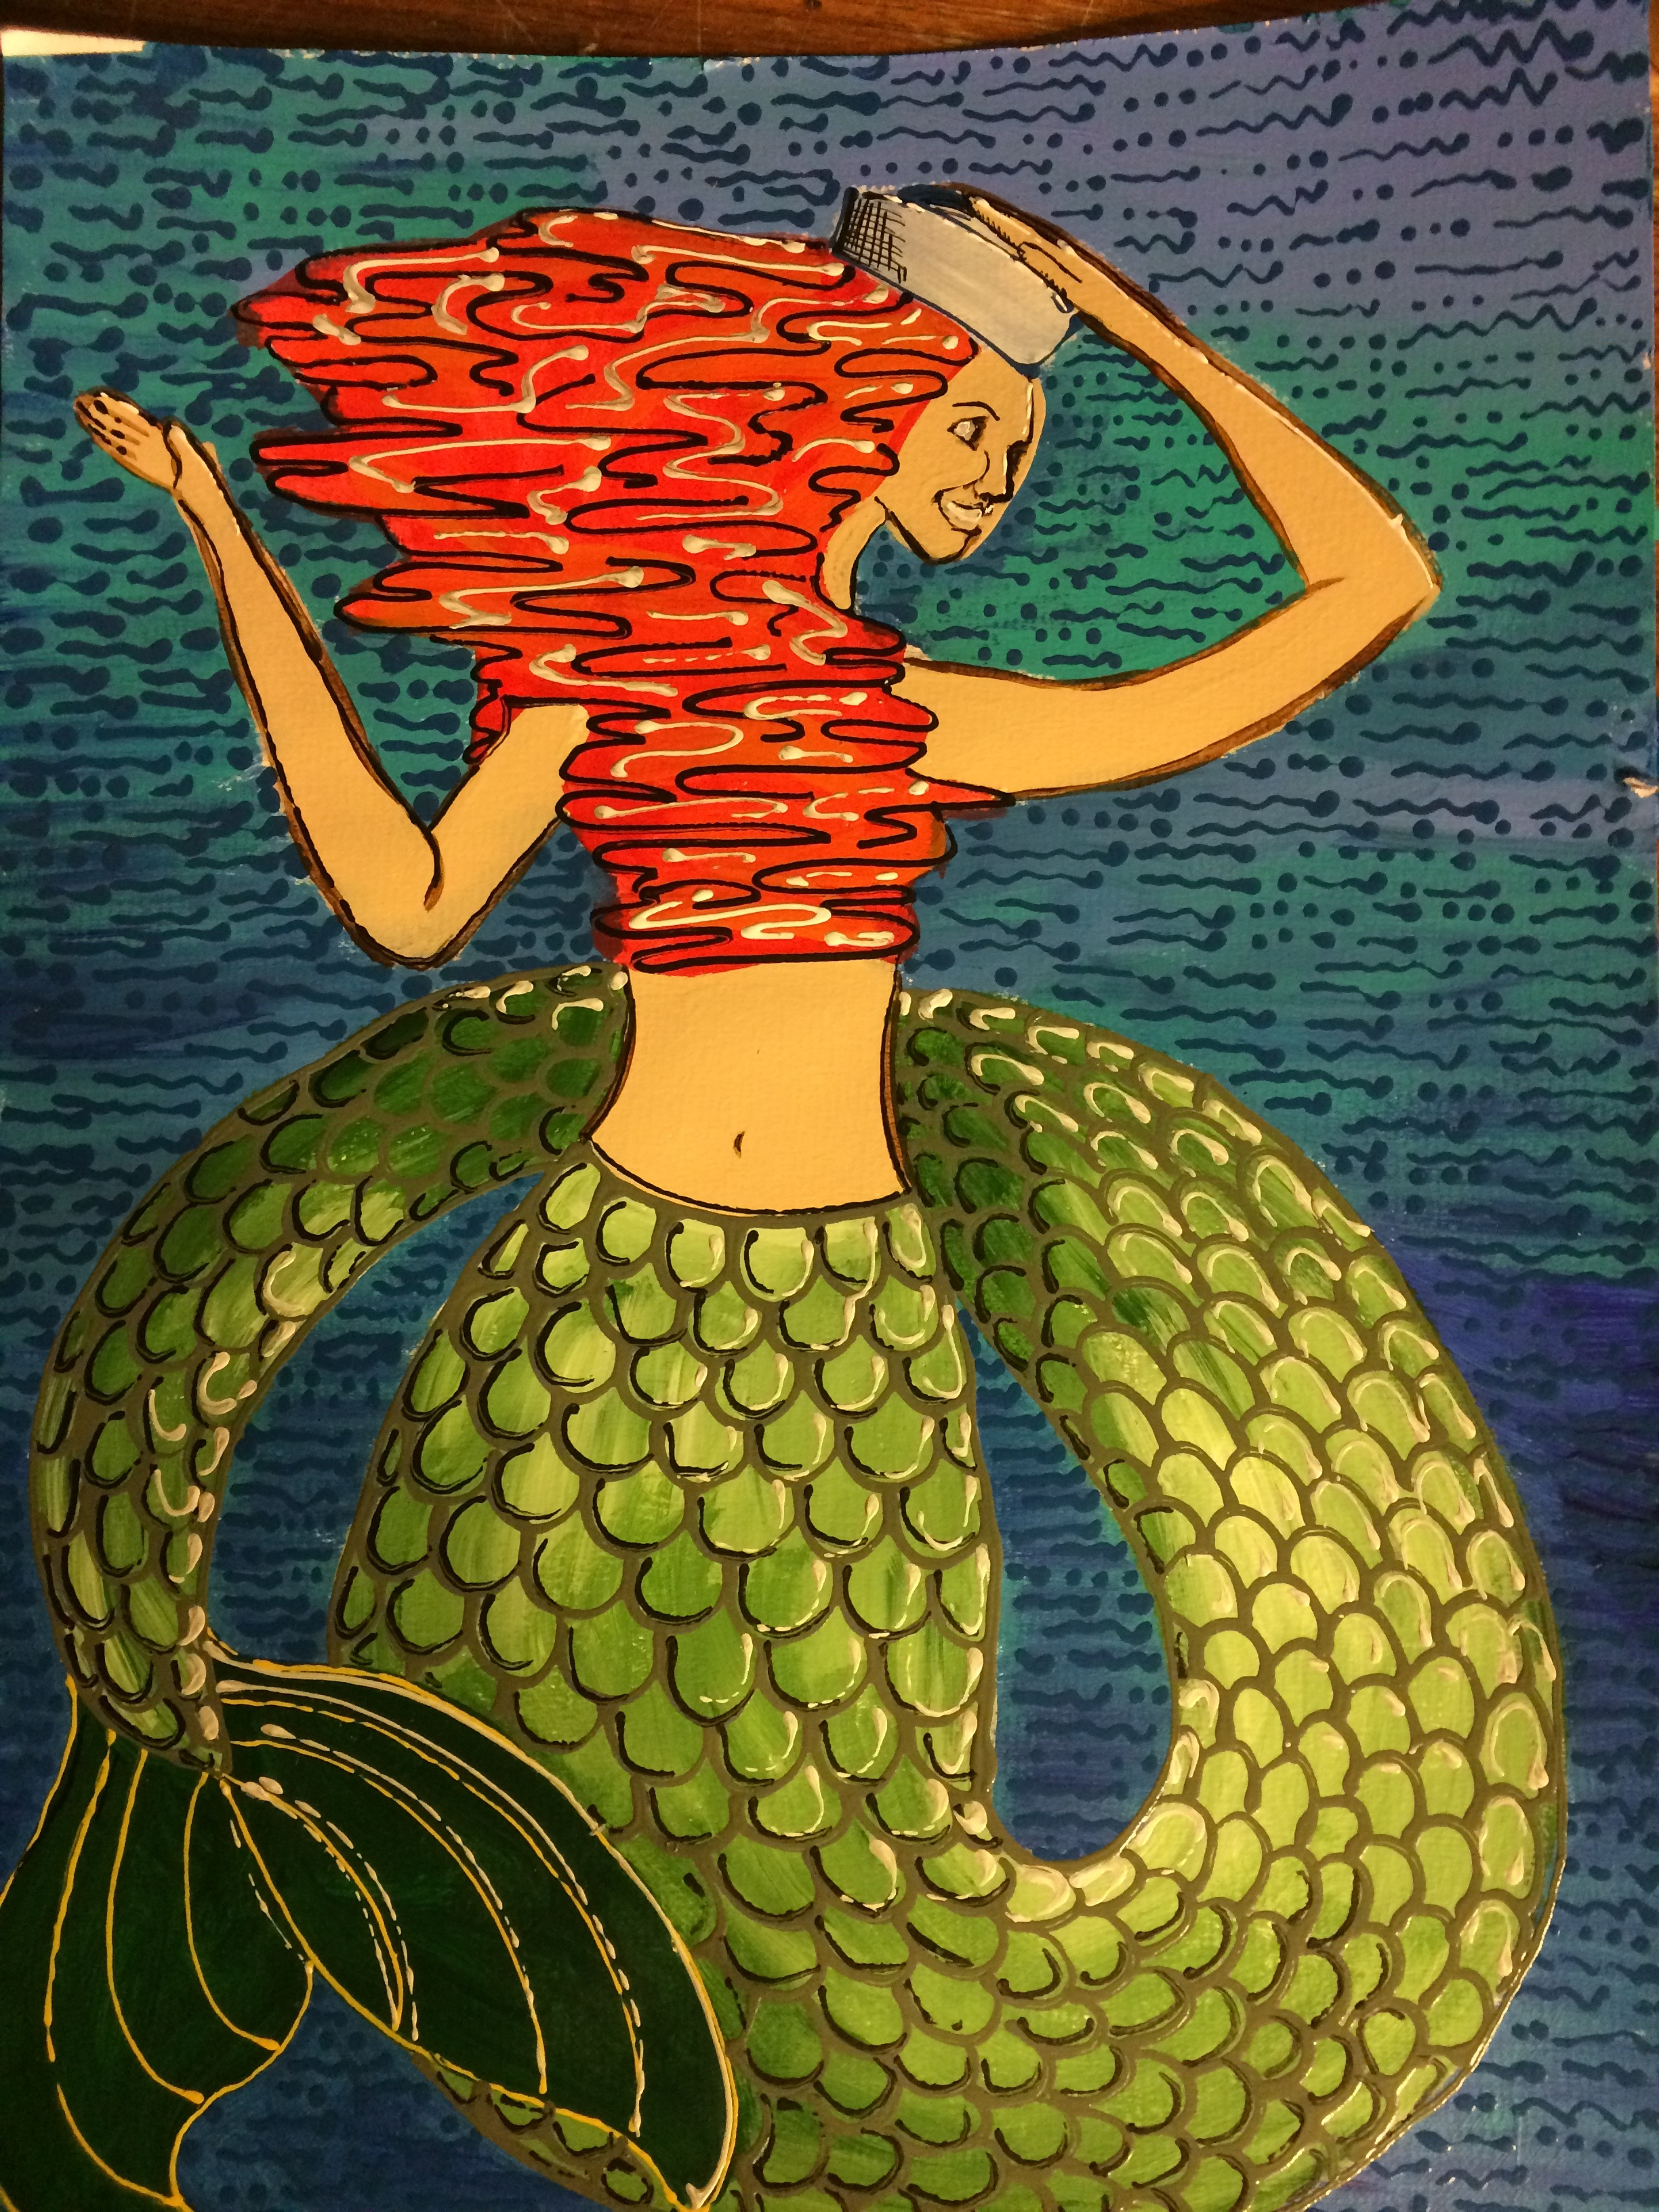 Cheery Red Head Mermaid